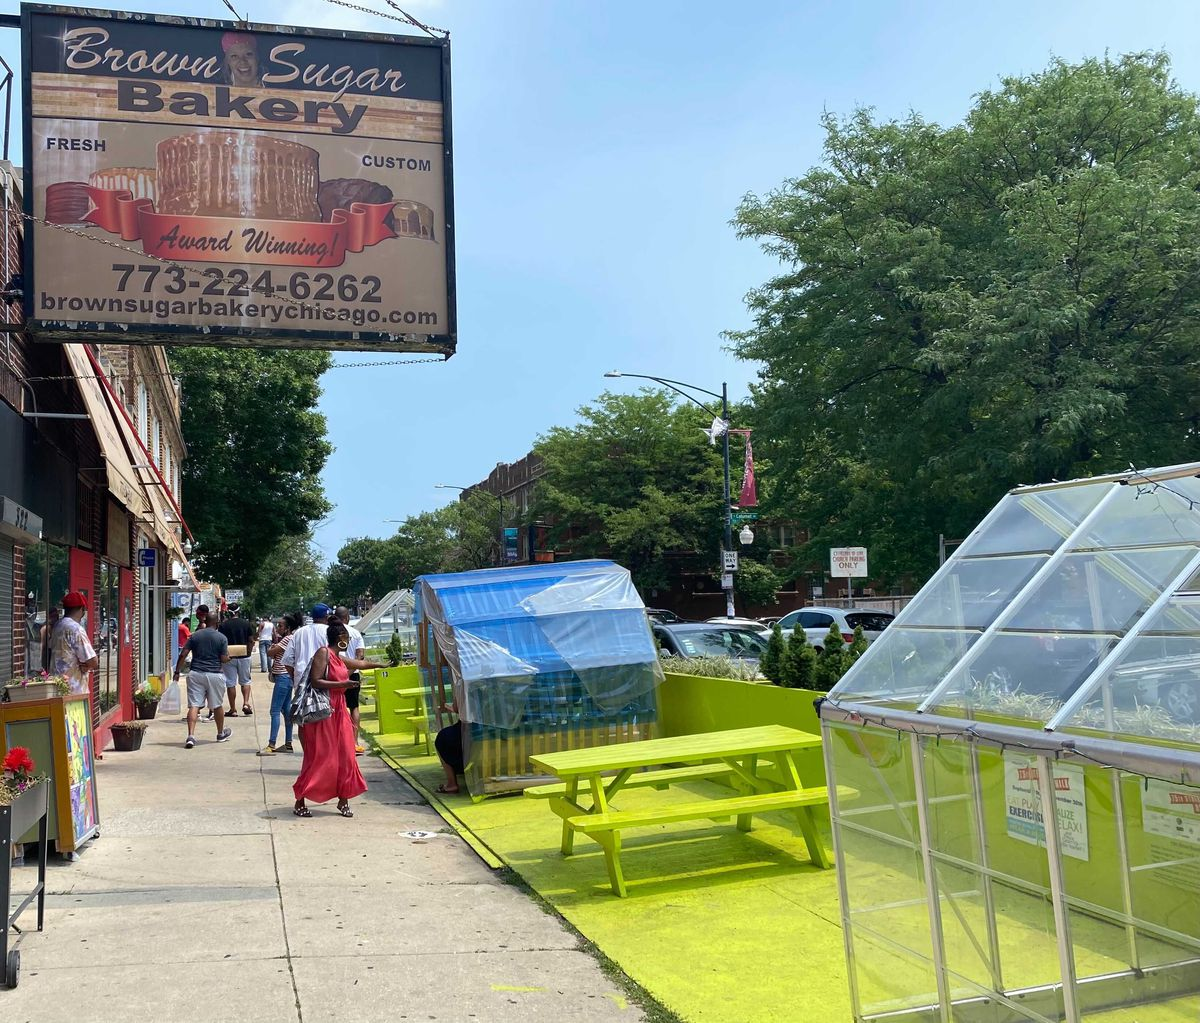 Shoppers walk along the street Saturday afternoon in the 300 block of East 75th Street in the area's lively business district, which includes Brown Sugar Bakery.